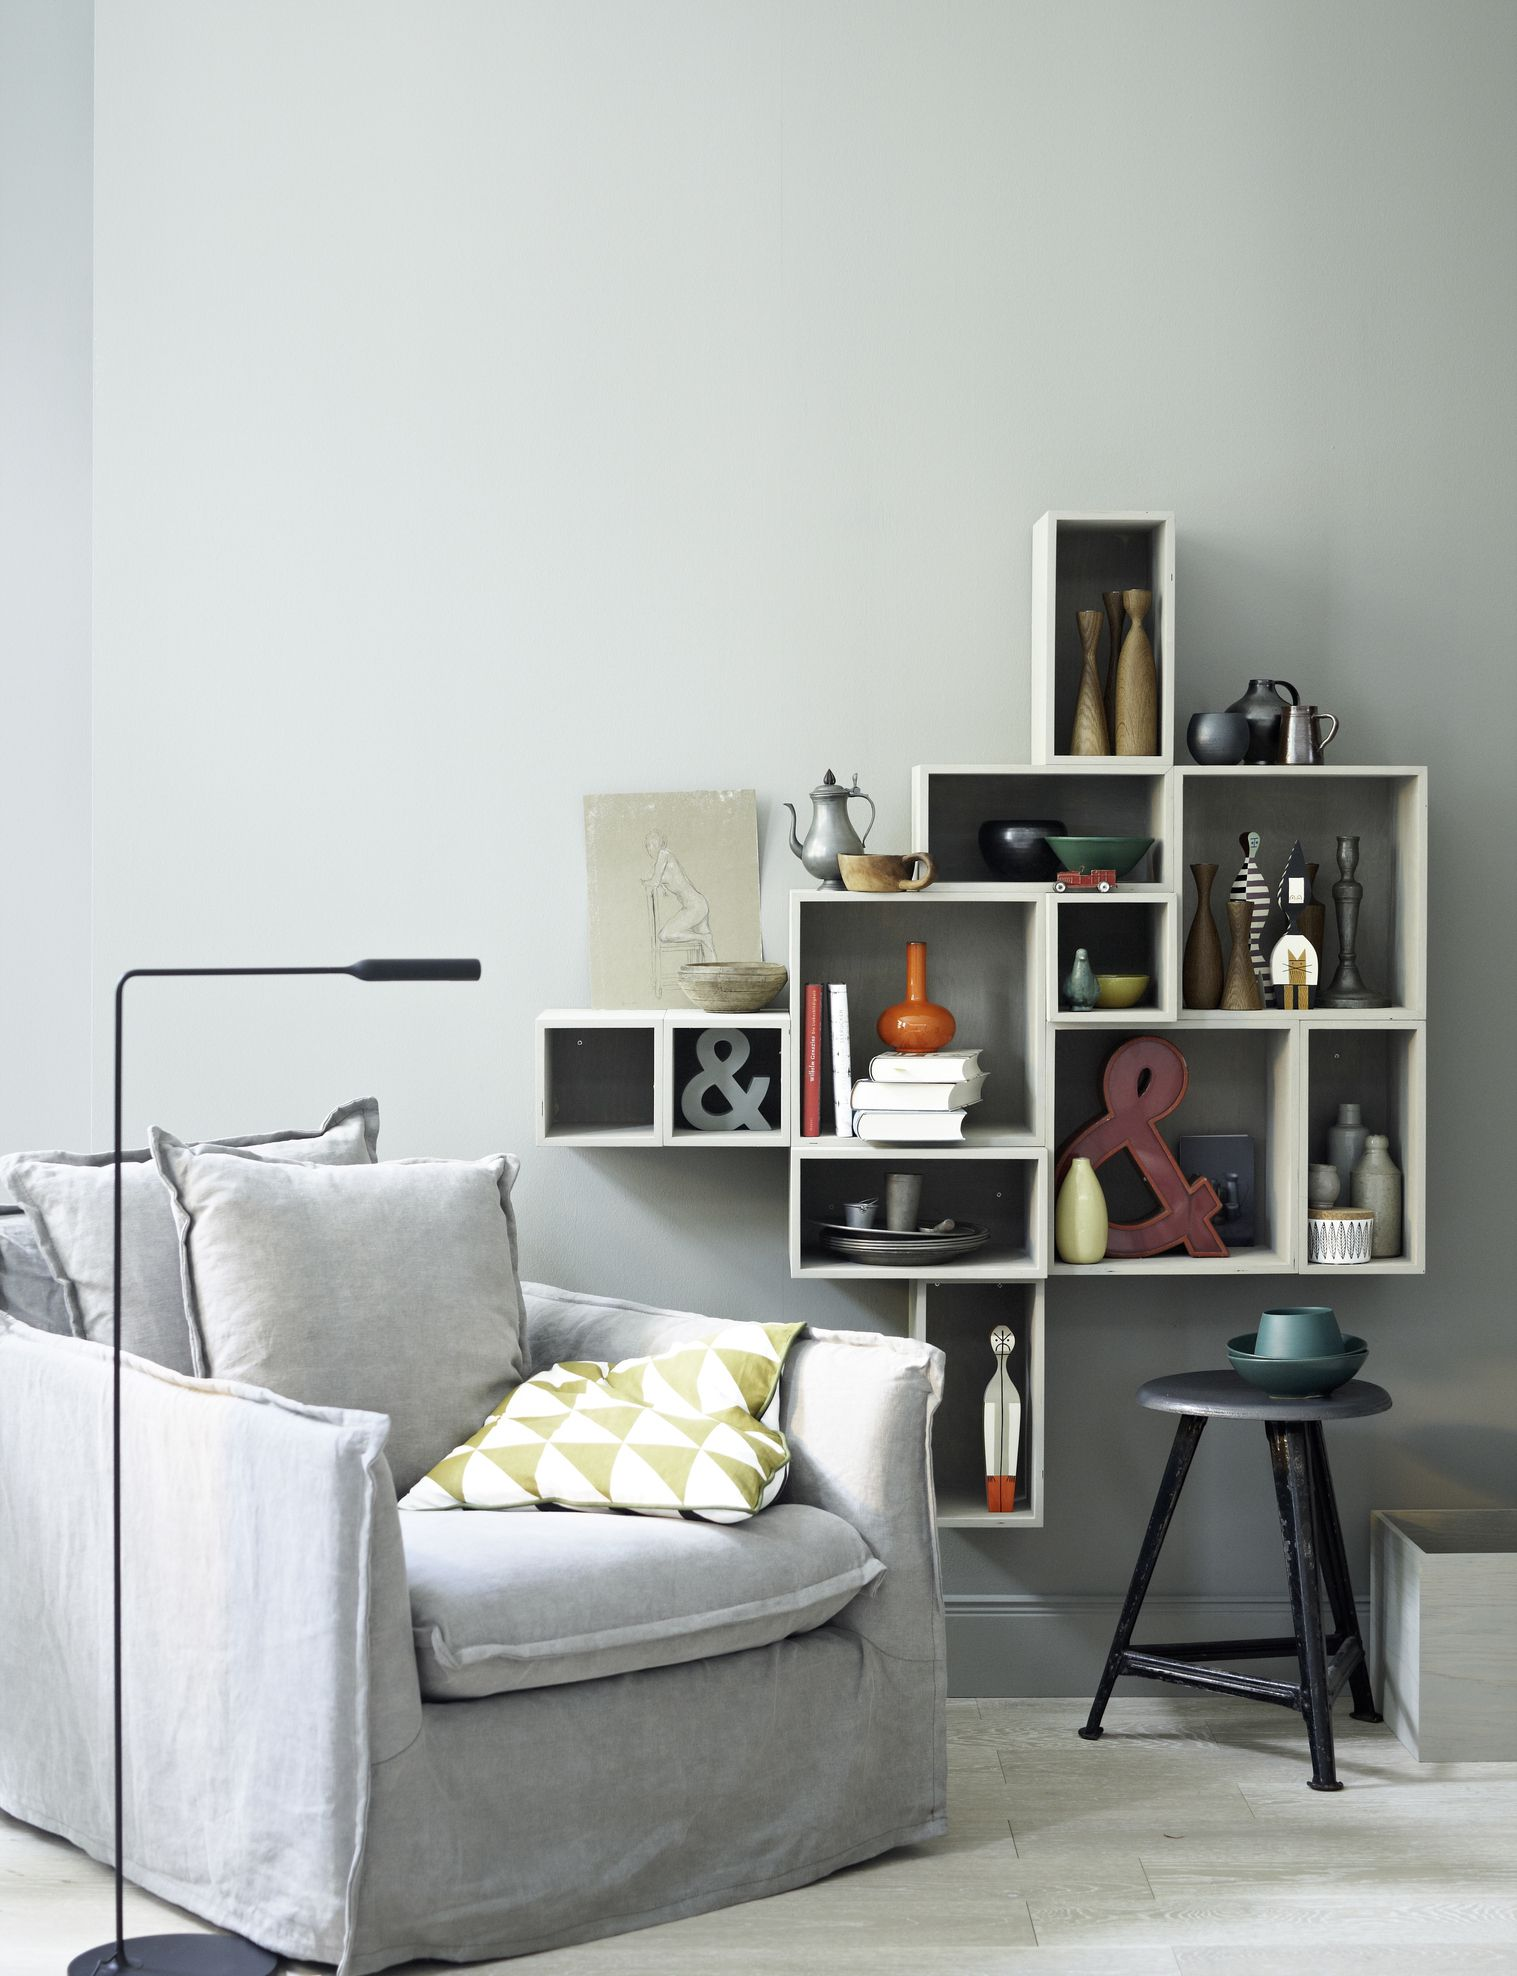 Simple Tips for Decorating With Accessories